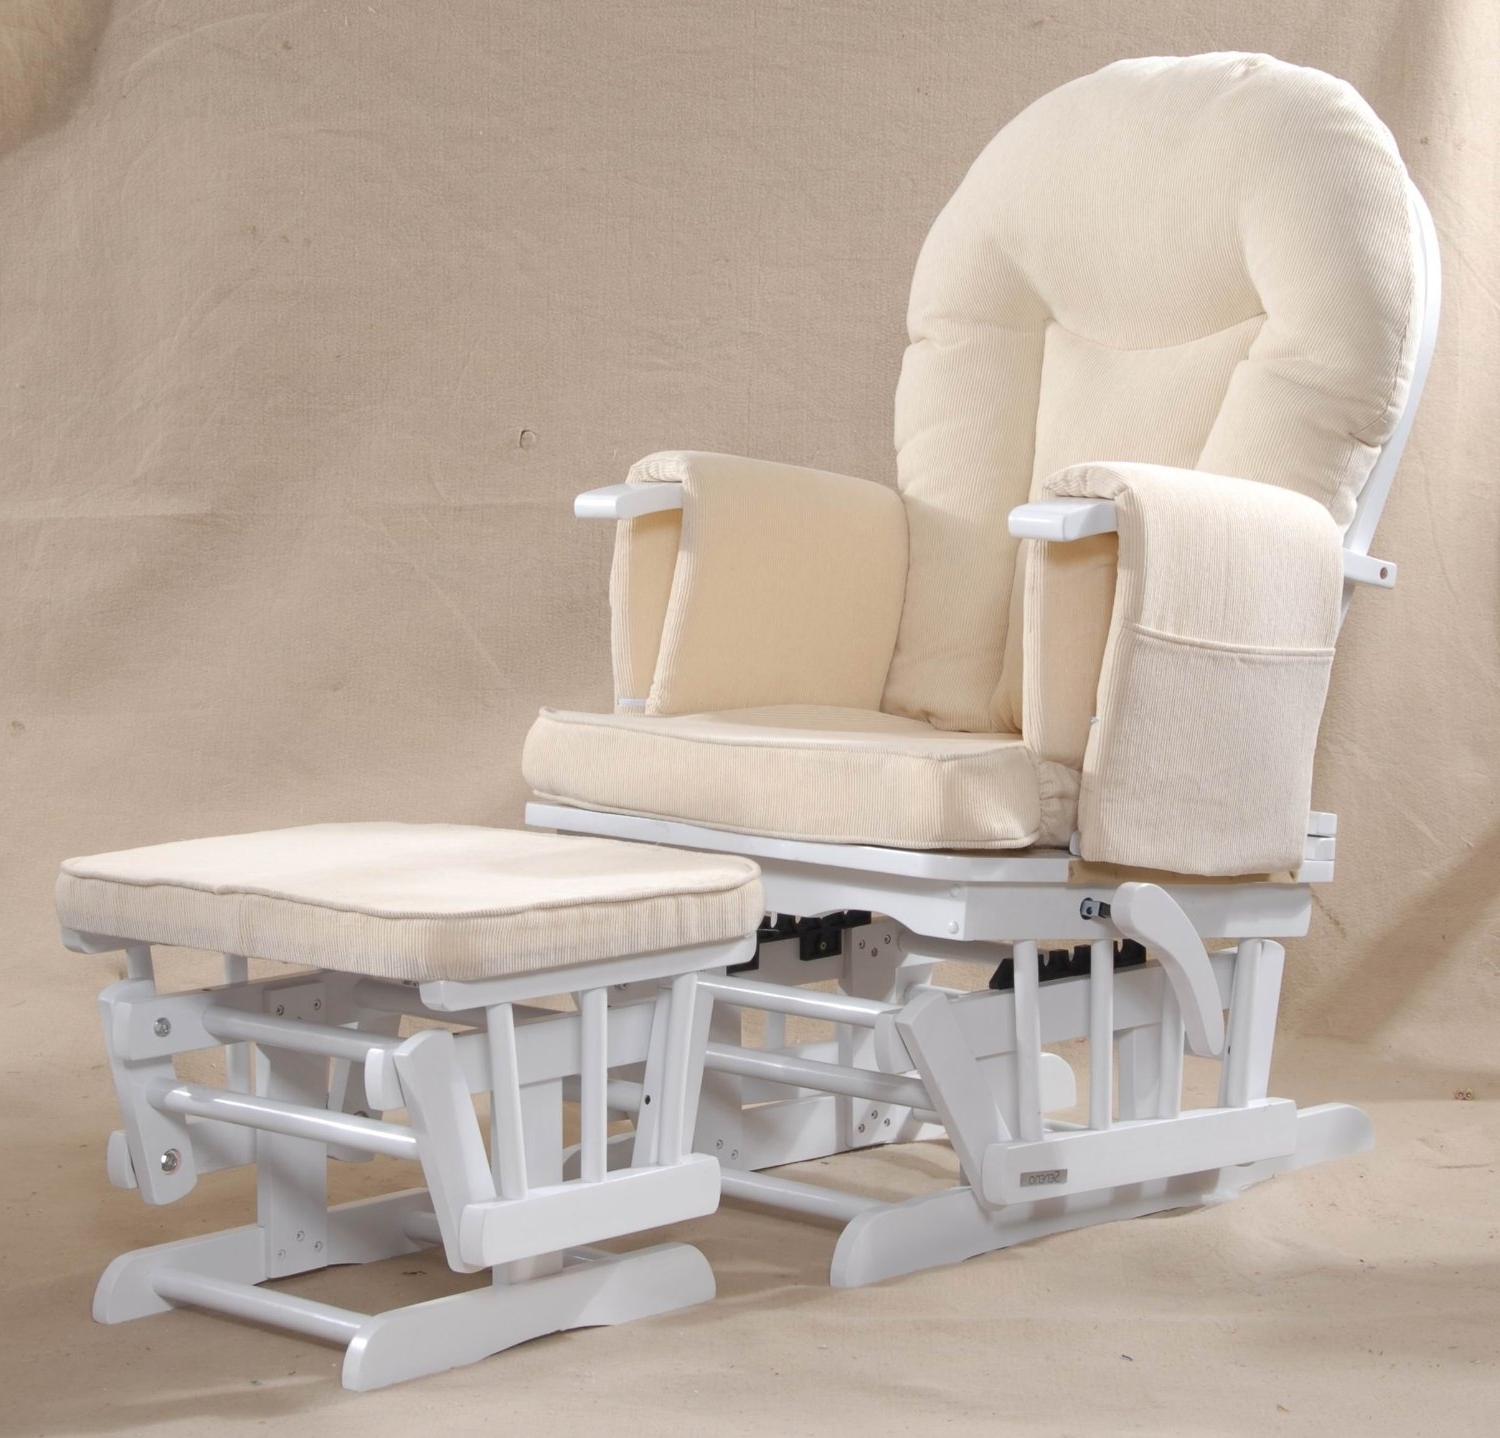 Popular Rocking Chairs For Nursing Throughout Bedroom : Nursery Rocking Chair Nursing Chair Glider Rocker Baby (View 6 of 15)